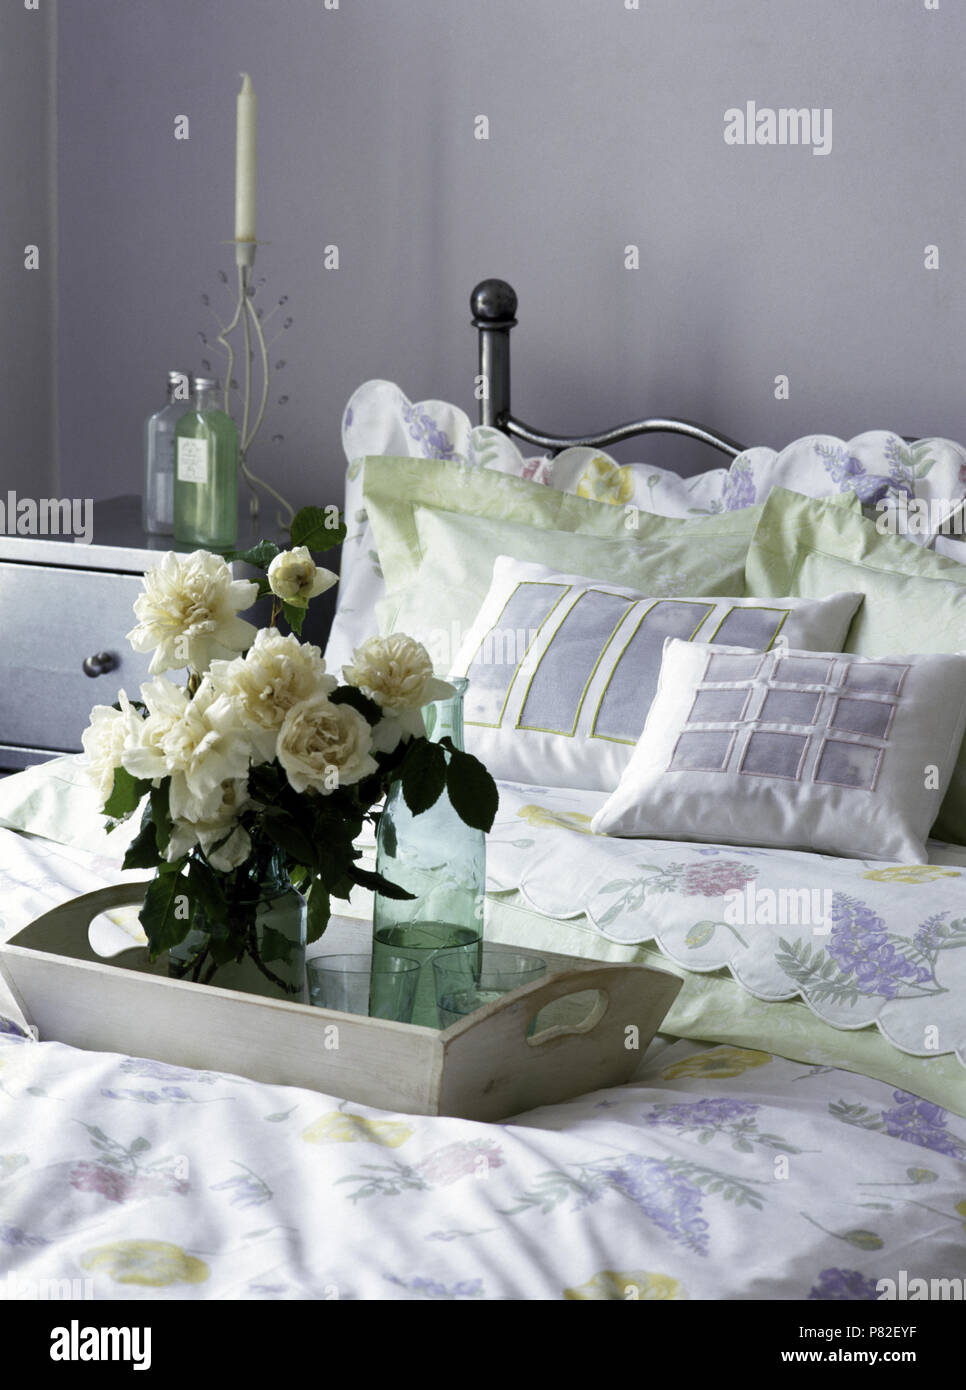 Vase of white roses on a wooden chair on a bed with applique ...